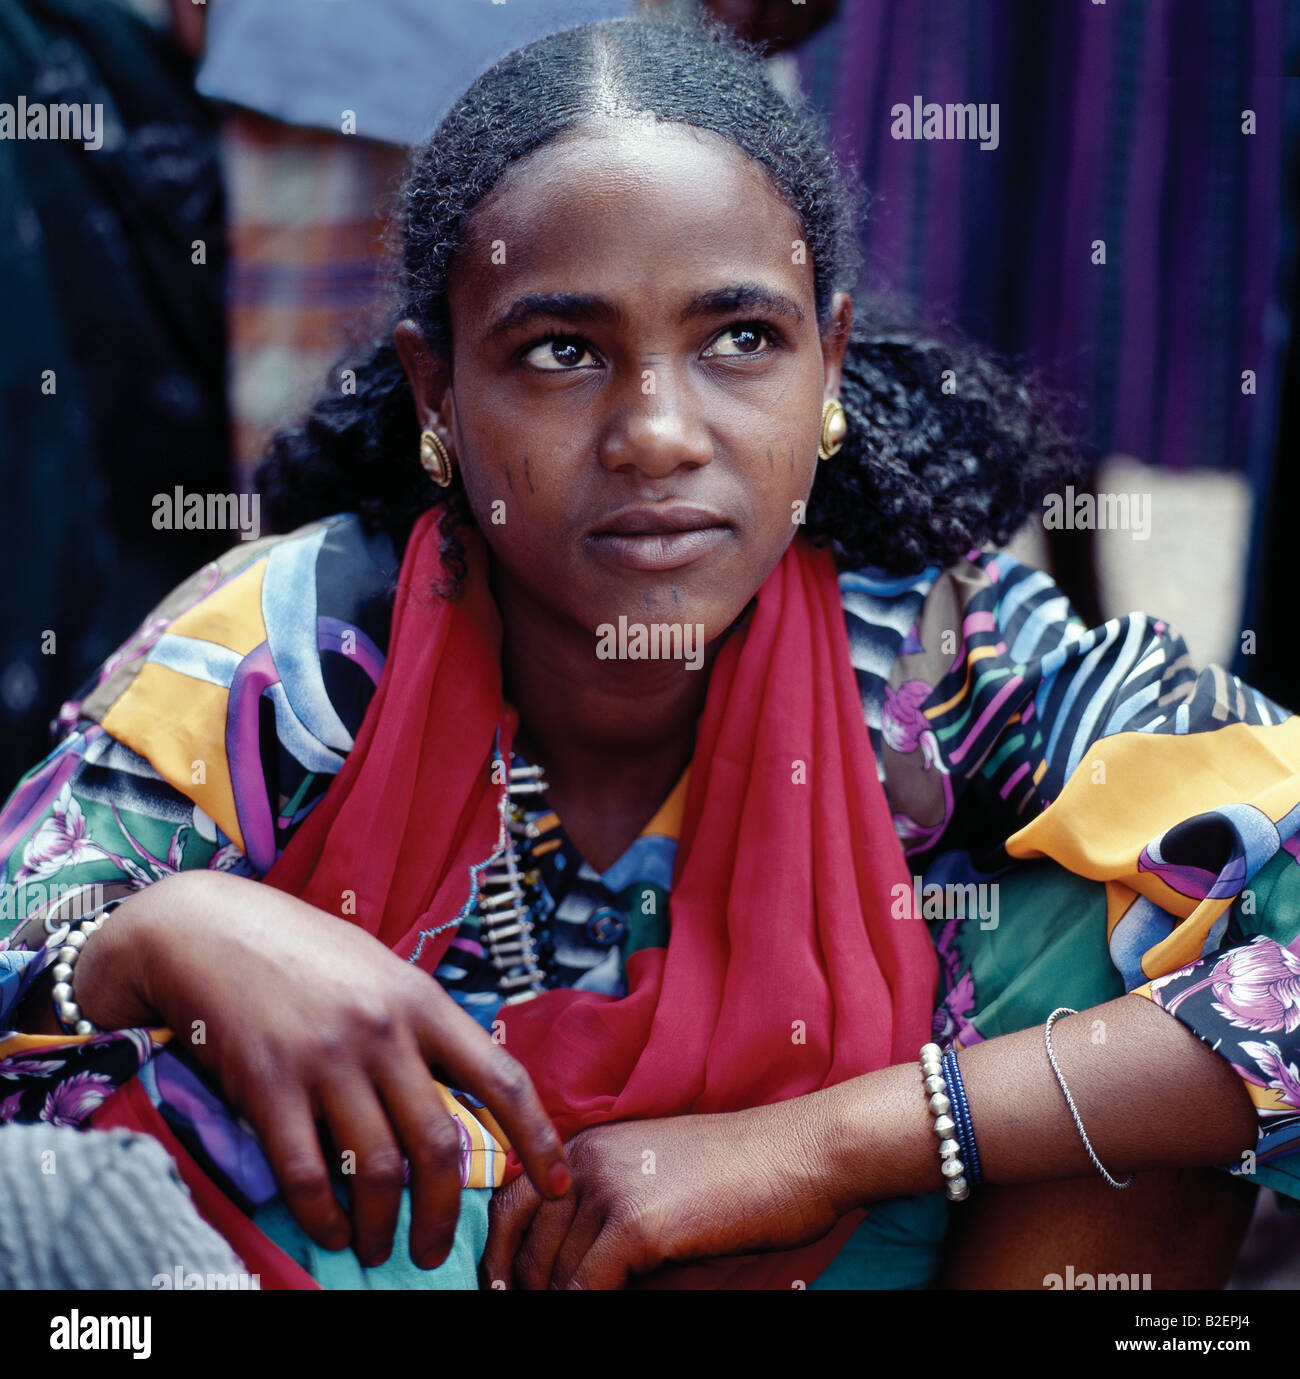 An attractive woman at Bati market. Bati is the largest open-air market in Ethiopia. - Stock Image